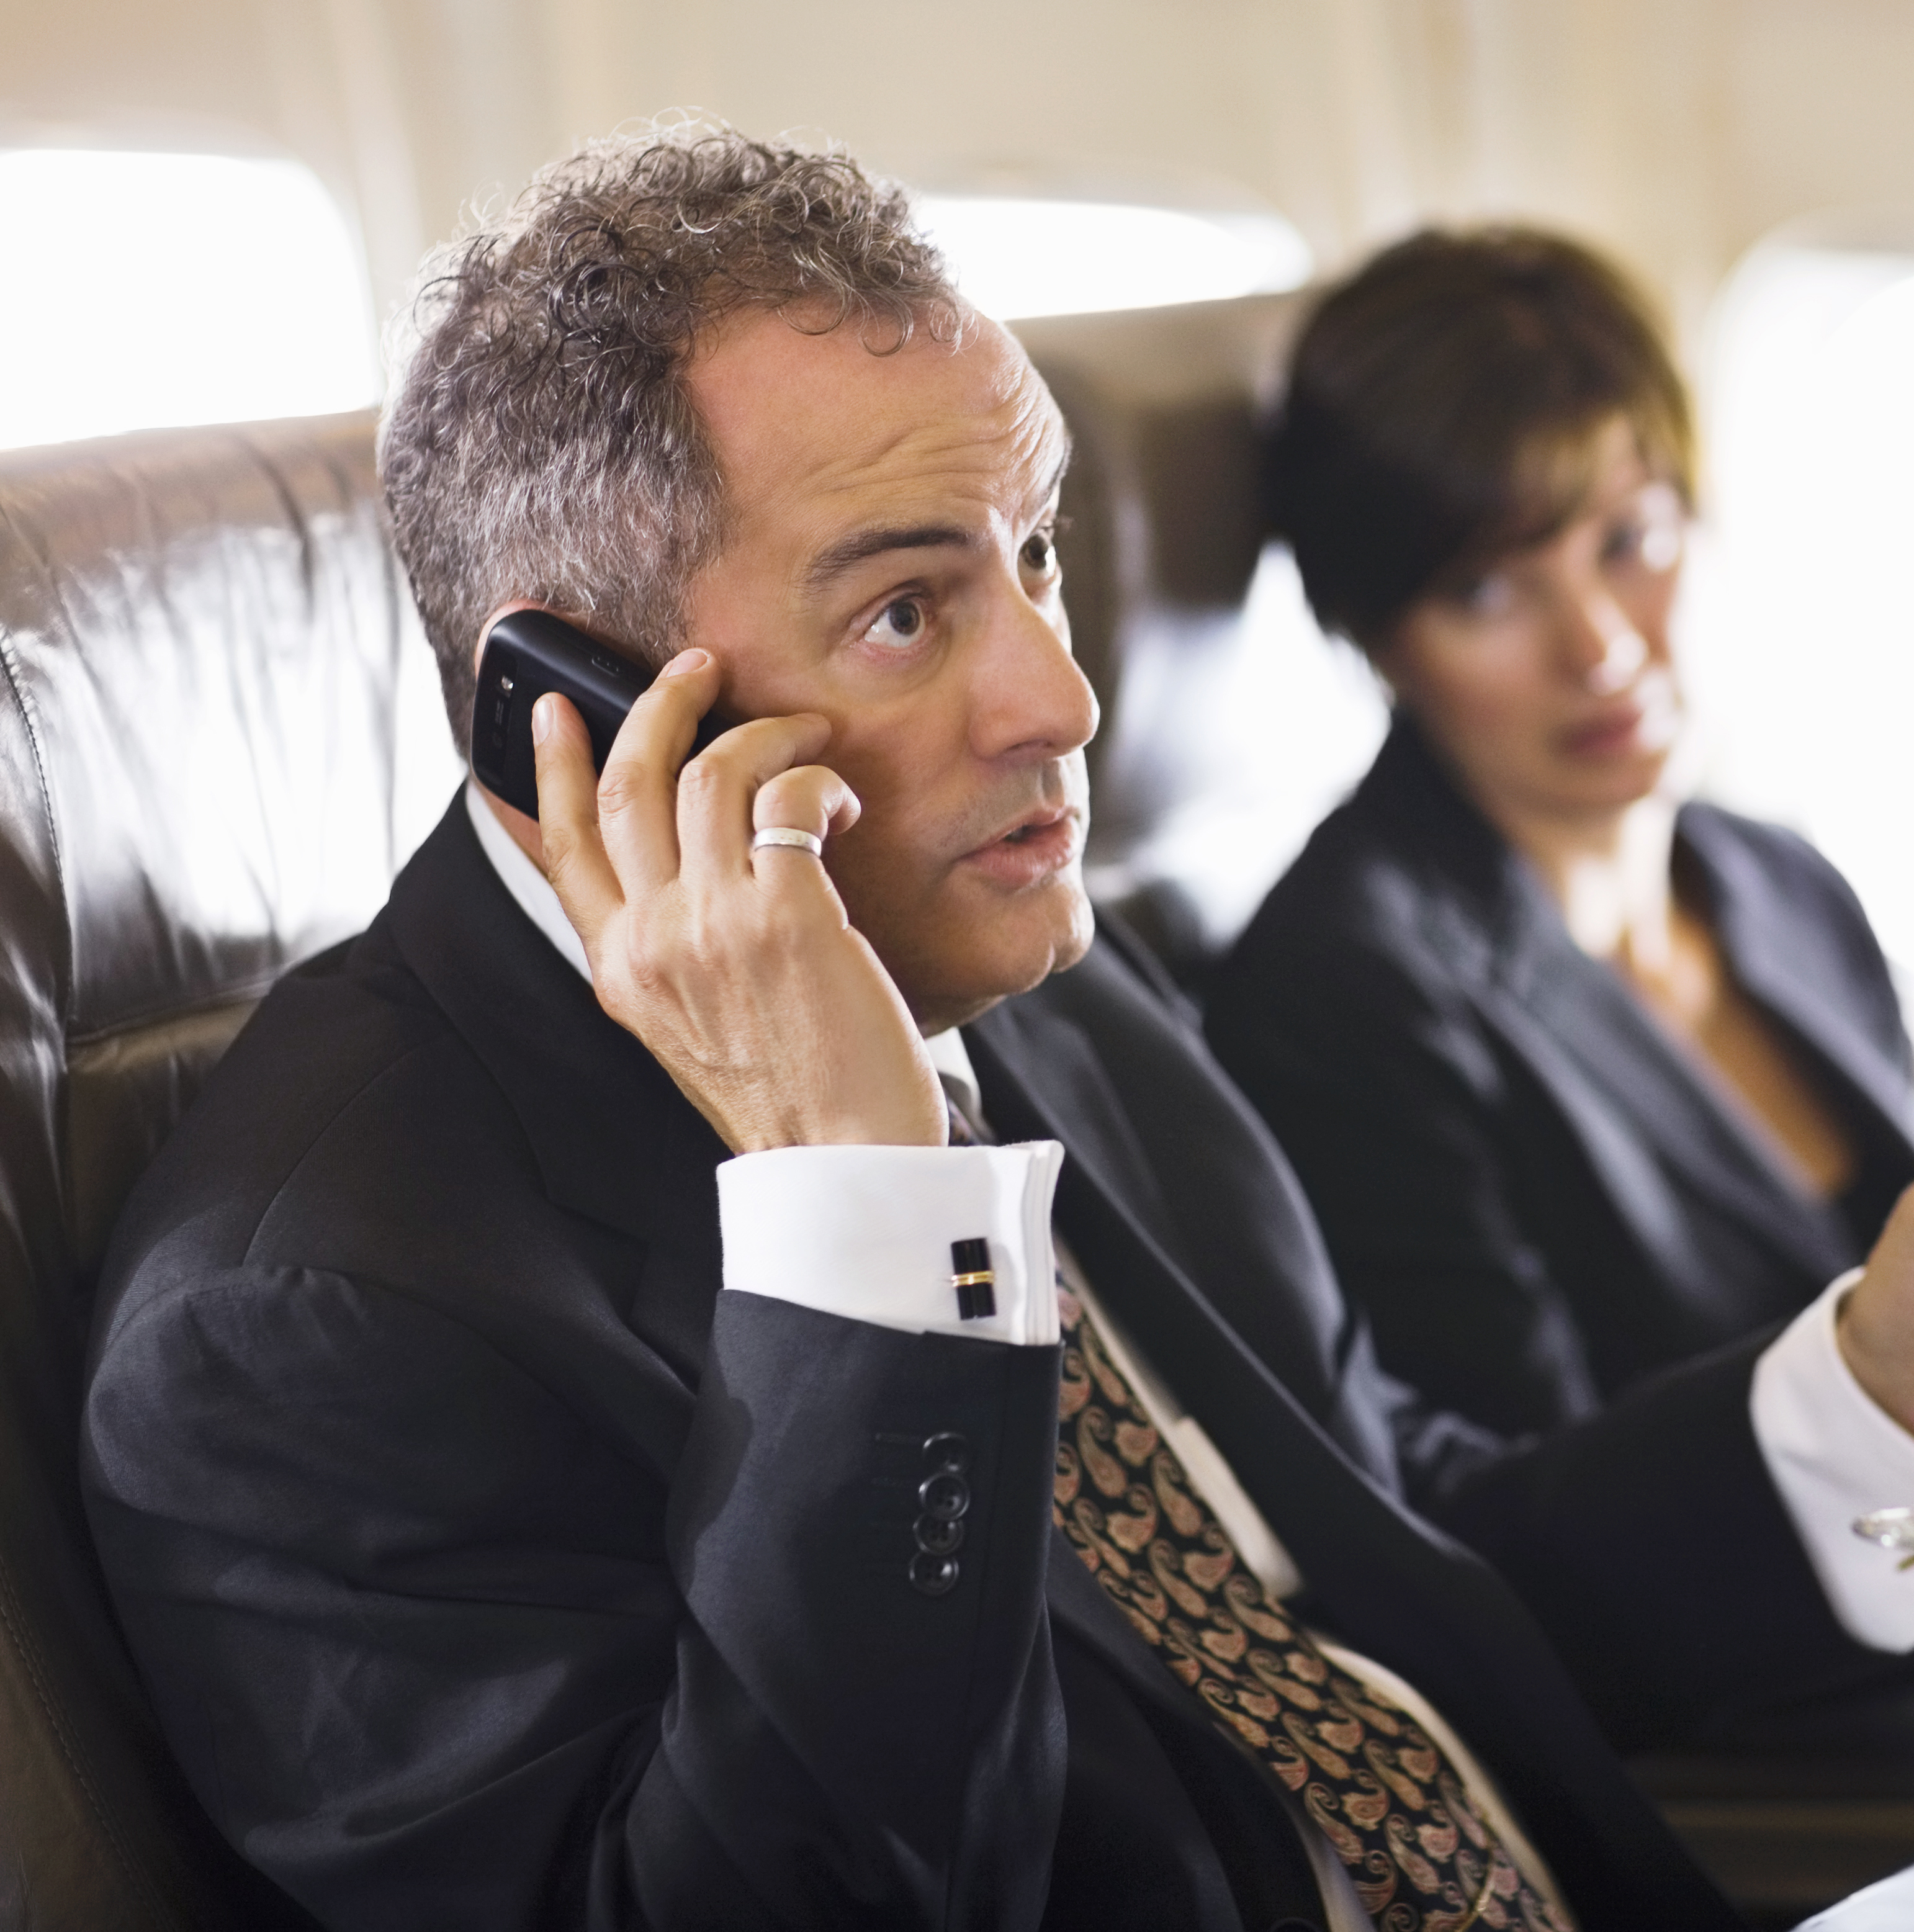 POLL: Are You Ready for Cellphone Calls on Airplanes?